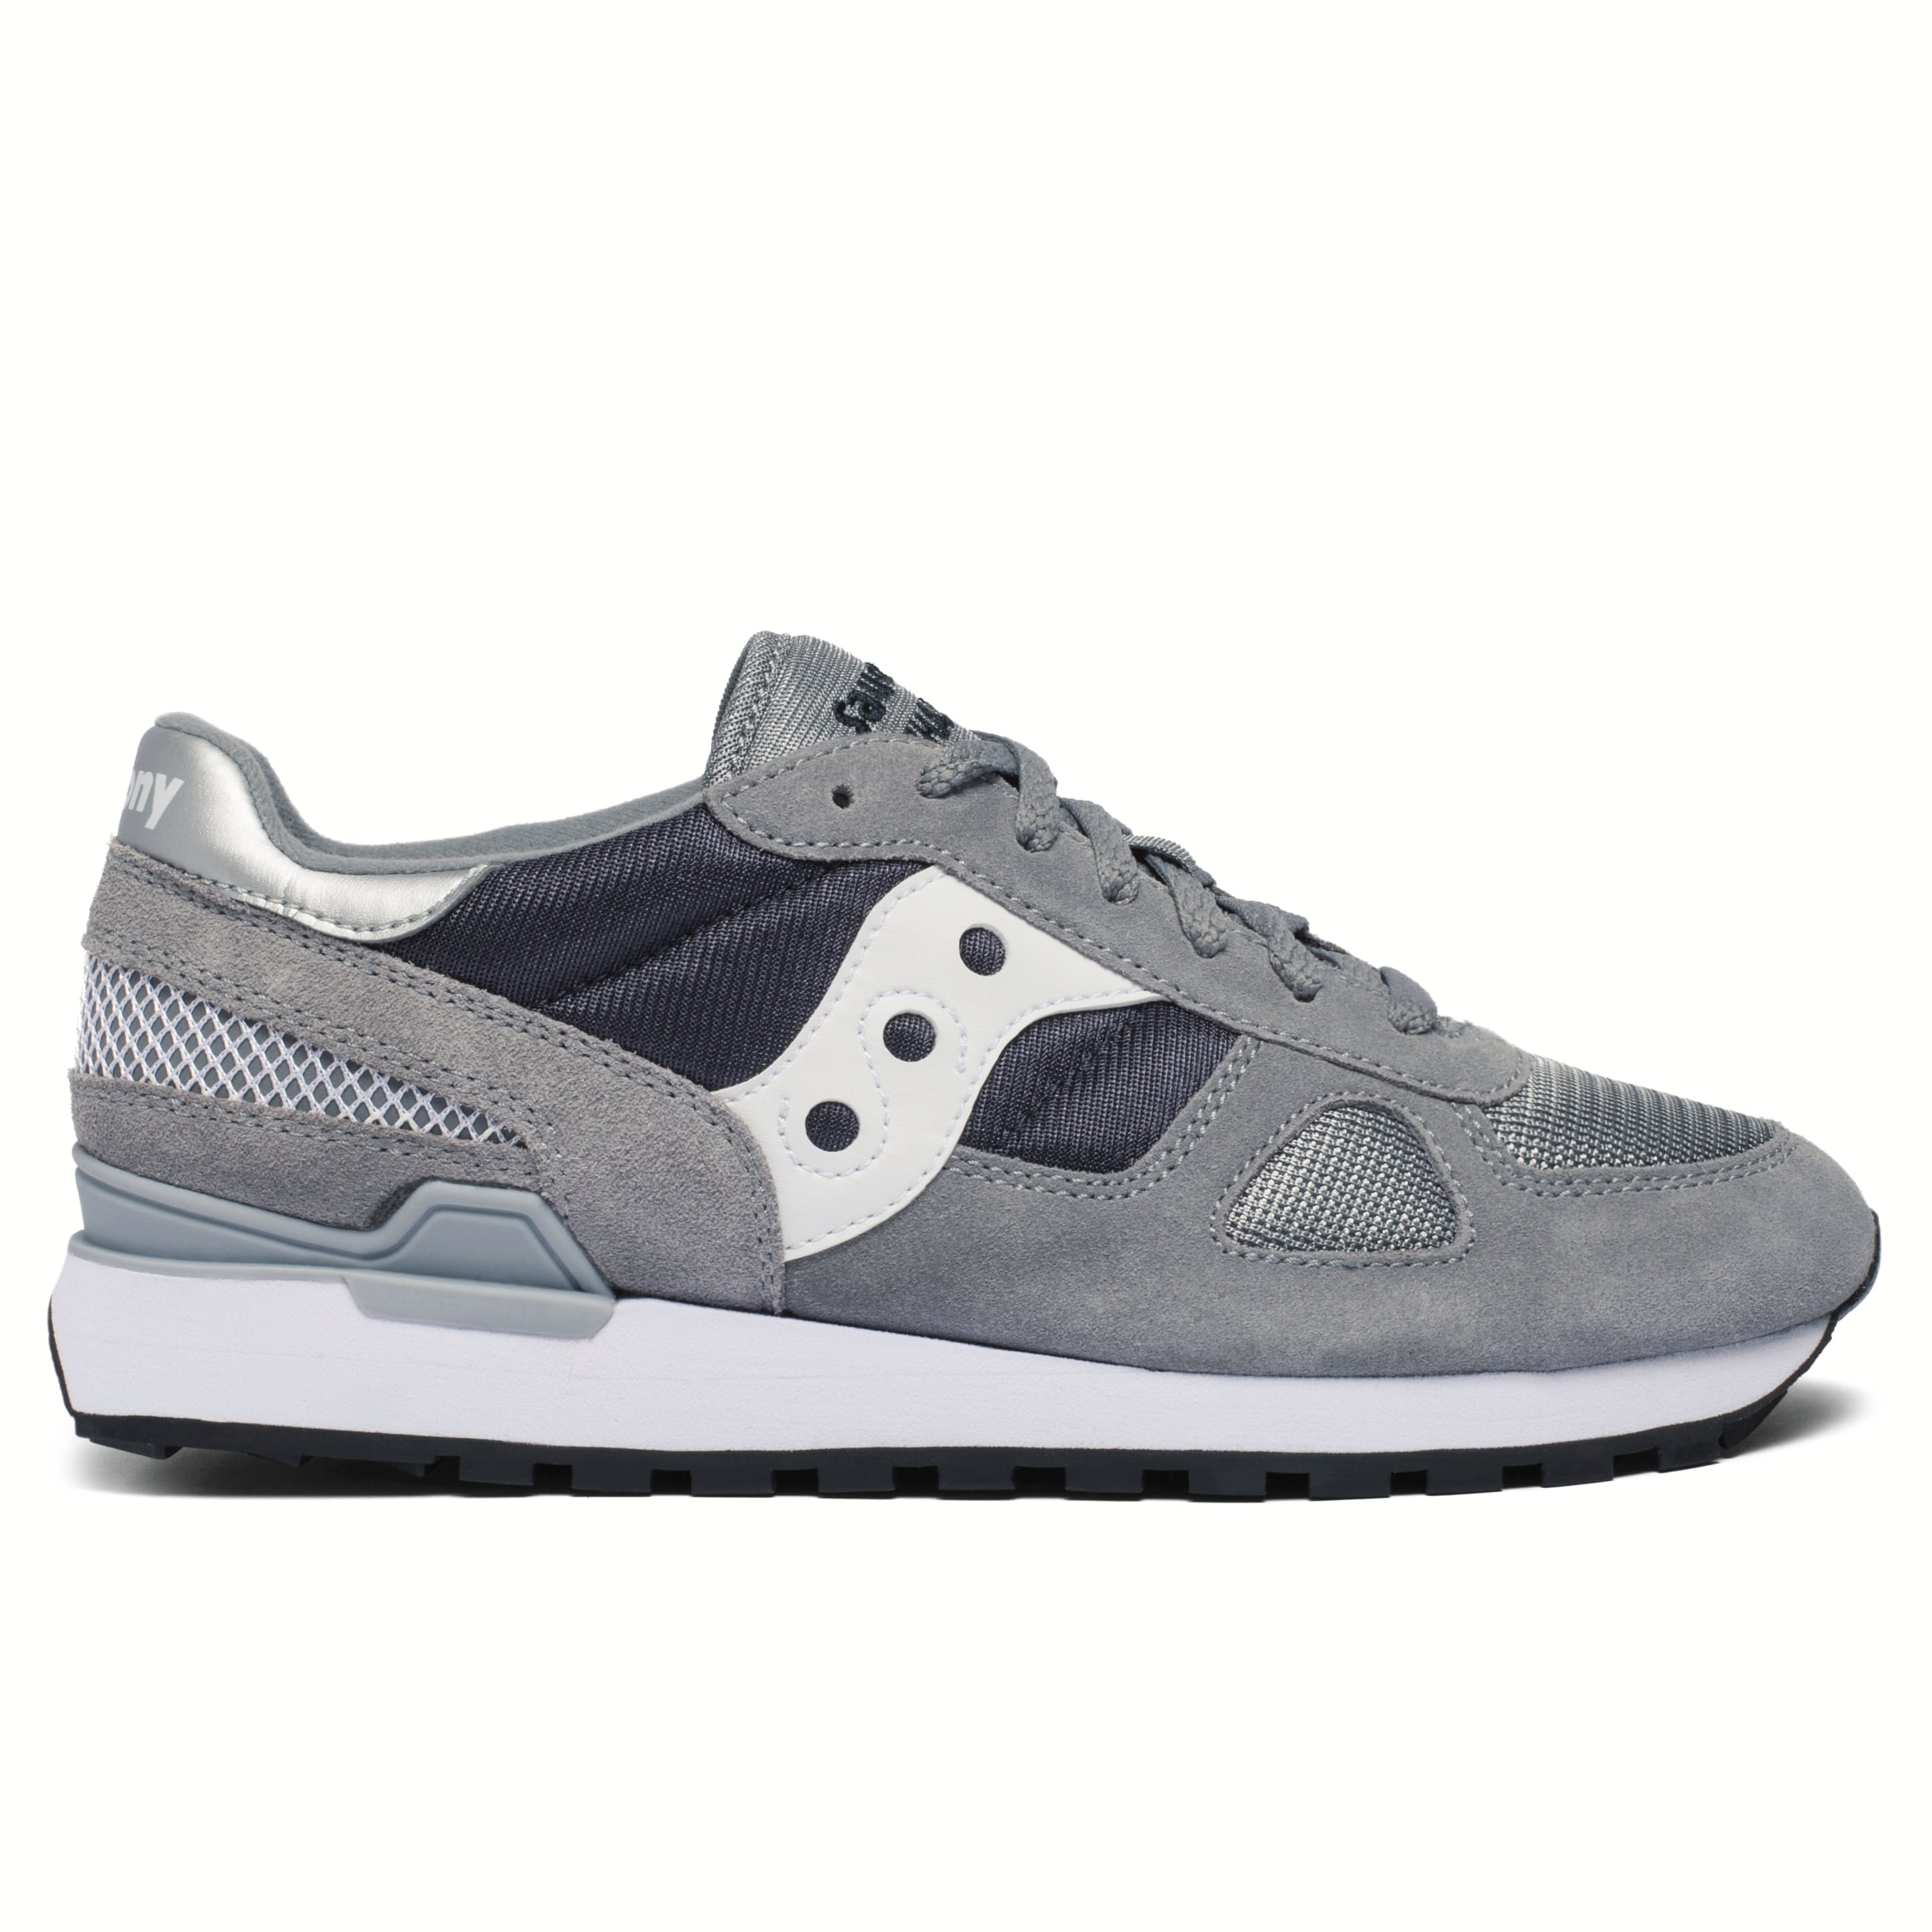 6916ea8b Shop Men's Saucony | Huckberry